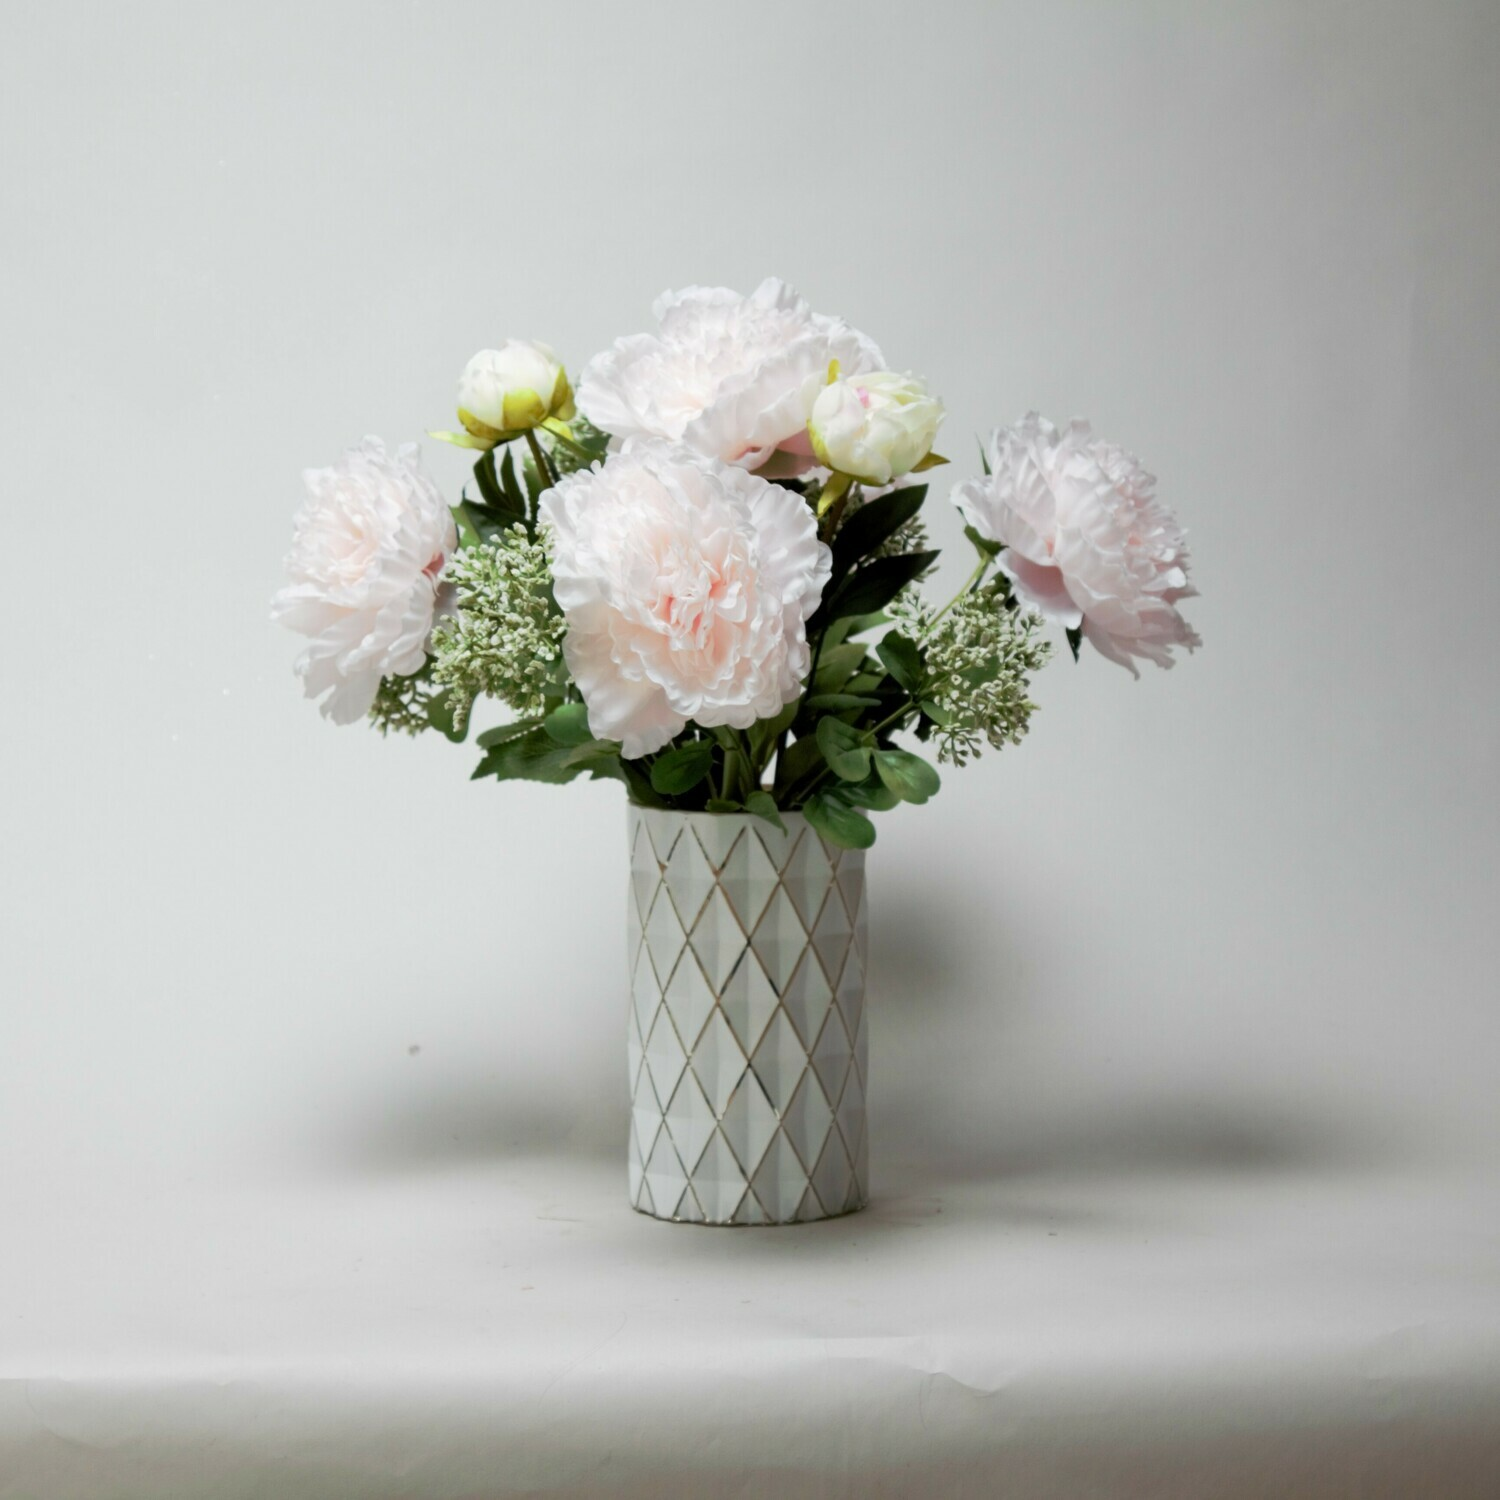 Peonies and Achillea in a diamond textured vase